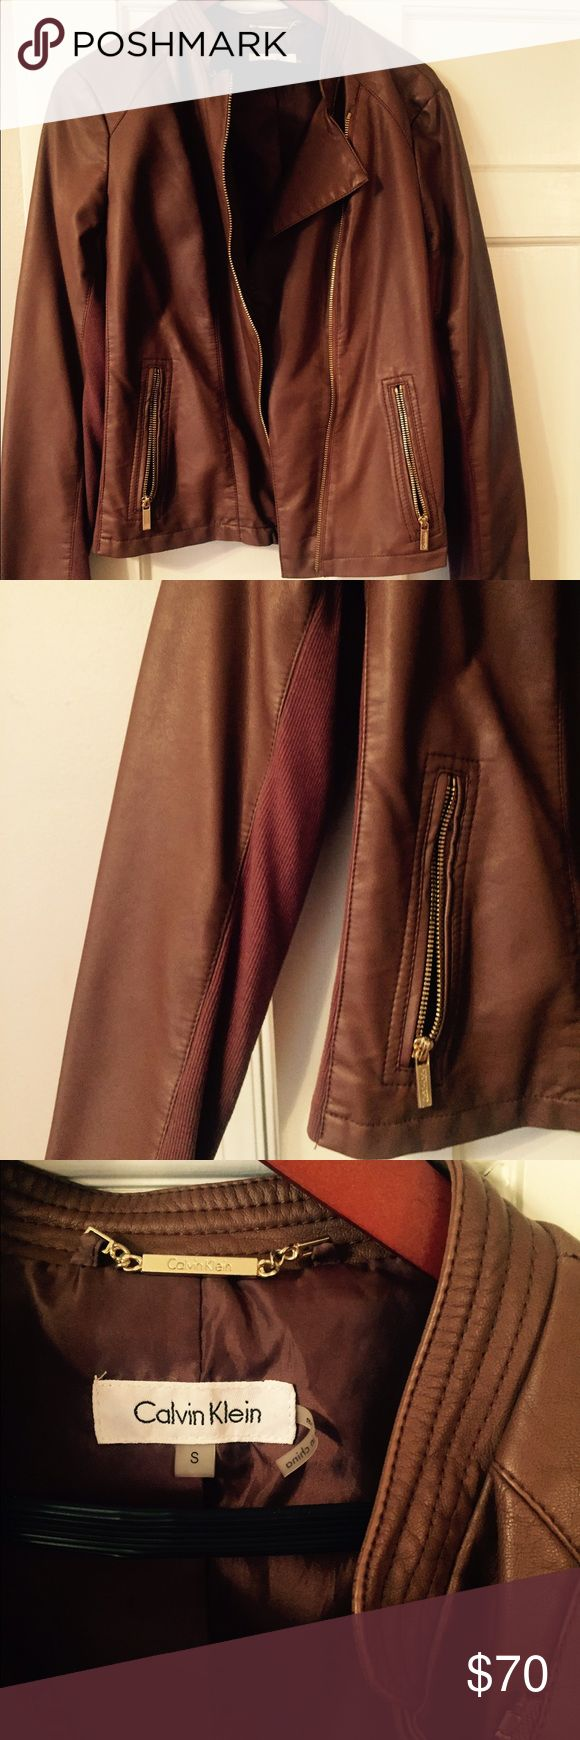 Caramel brown Calvin Klein leather jacket Soft caramel brown Calvin Klein leather jacket. Has stretch material on sleeves and gold zippers. Never worn Calvin Klein Collection Jackets & Coats